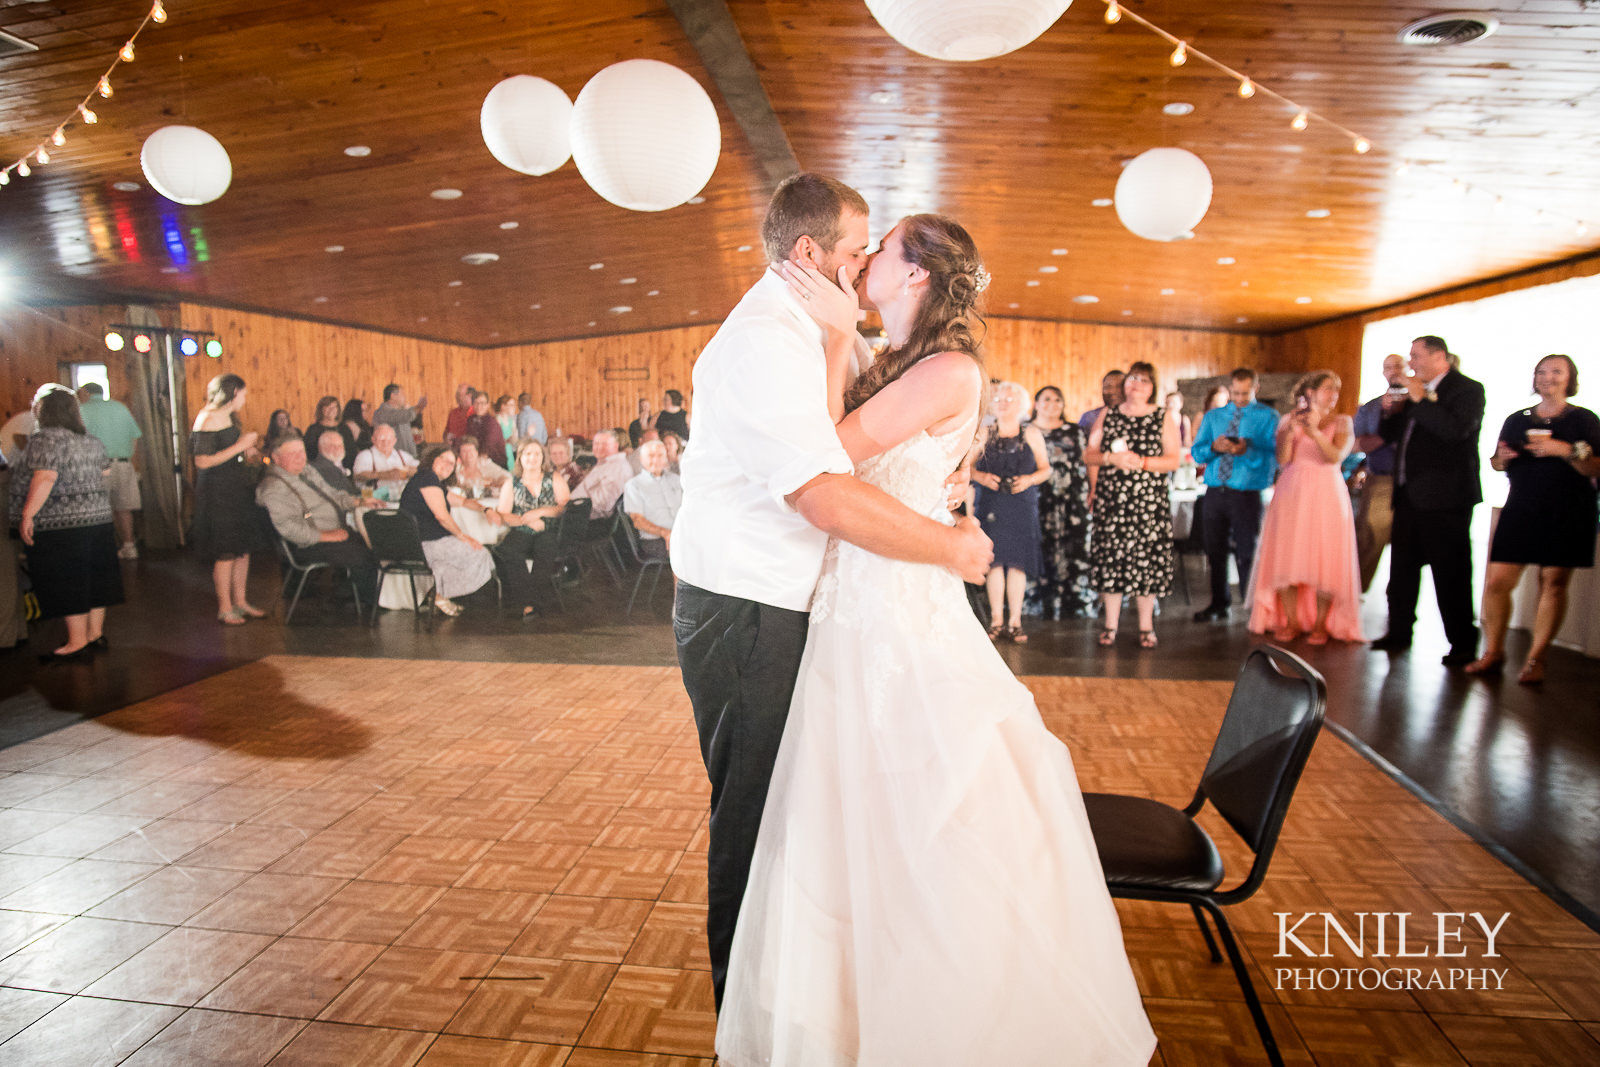 087 - Canandiagua NY wedding pictures - Kings Catering wedding reception - XT2B3527.jpg